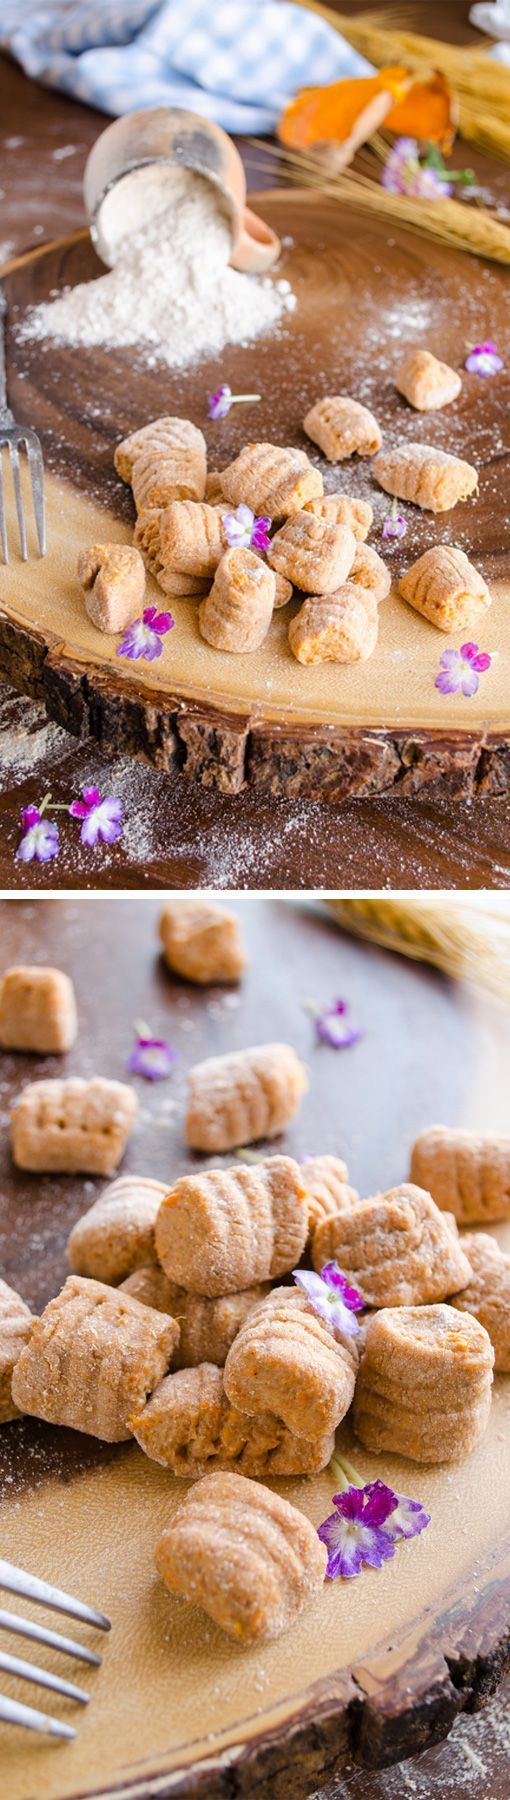 Whole Wheat Sweet Potato Gnocchi recipe, packed with vitamins and ...